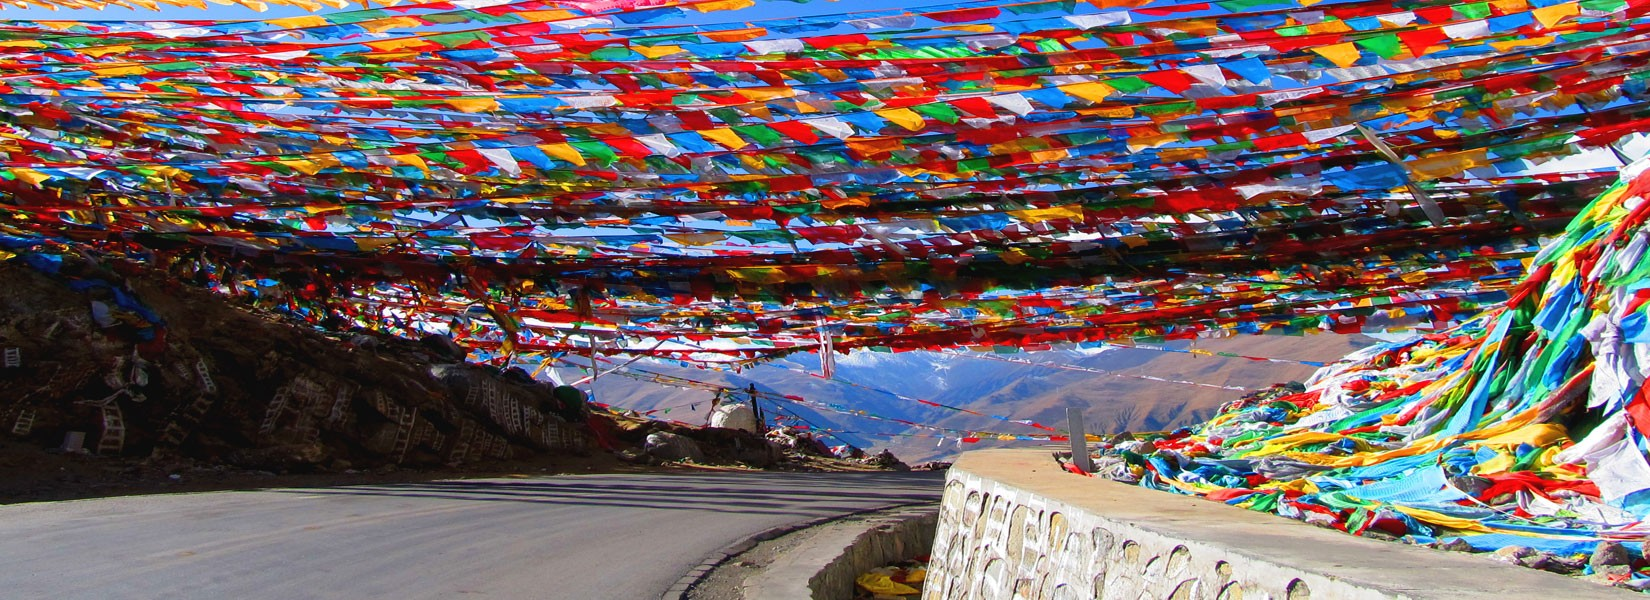 Tibet Lhasa Overland Tour 8 Days